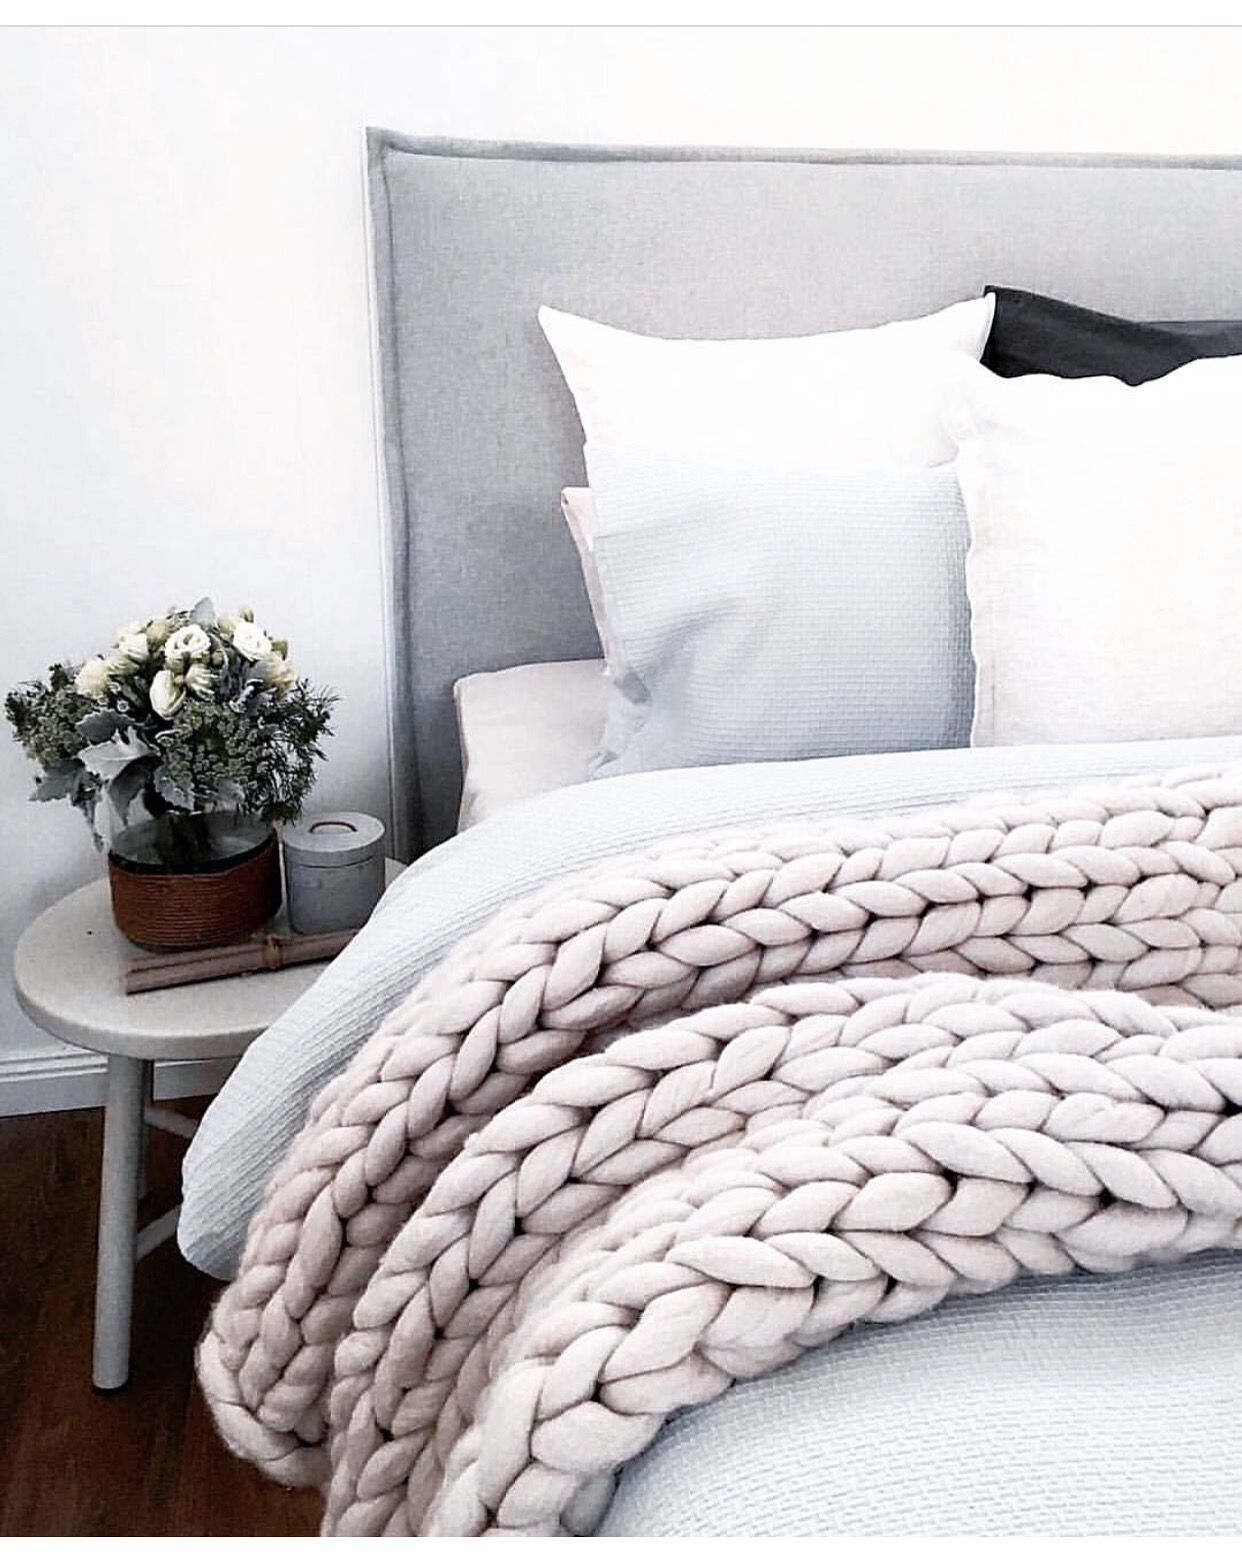 Oversize Knitted Woollen Throw from @nickel.n.co on Instagram  #oversizedknitting #